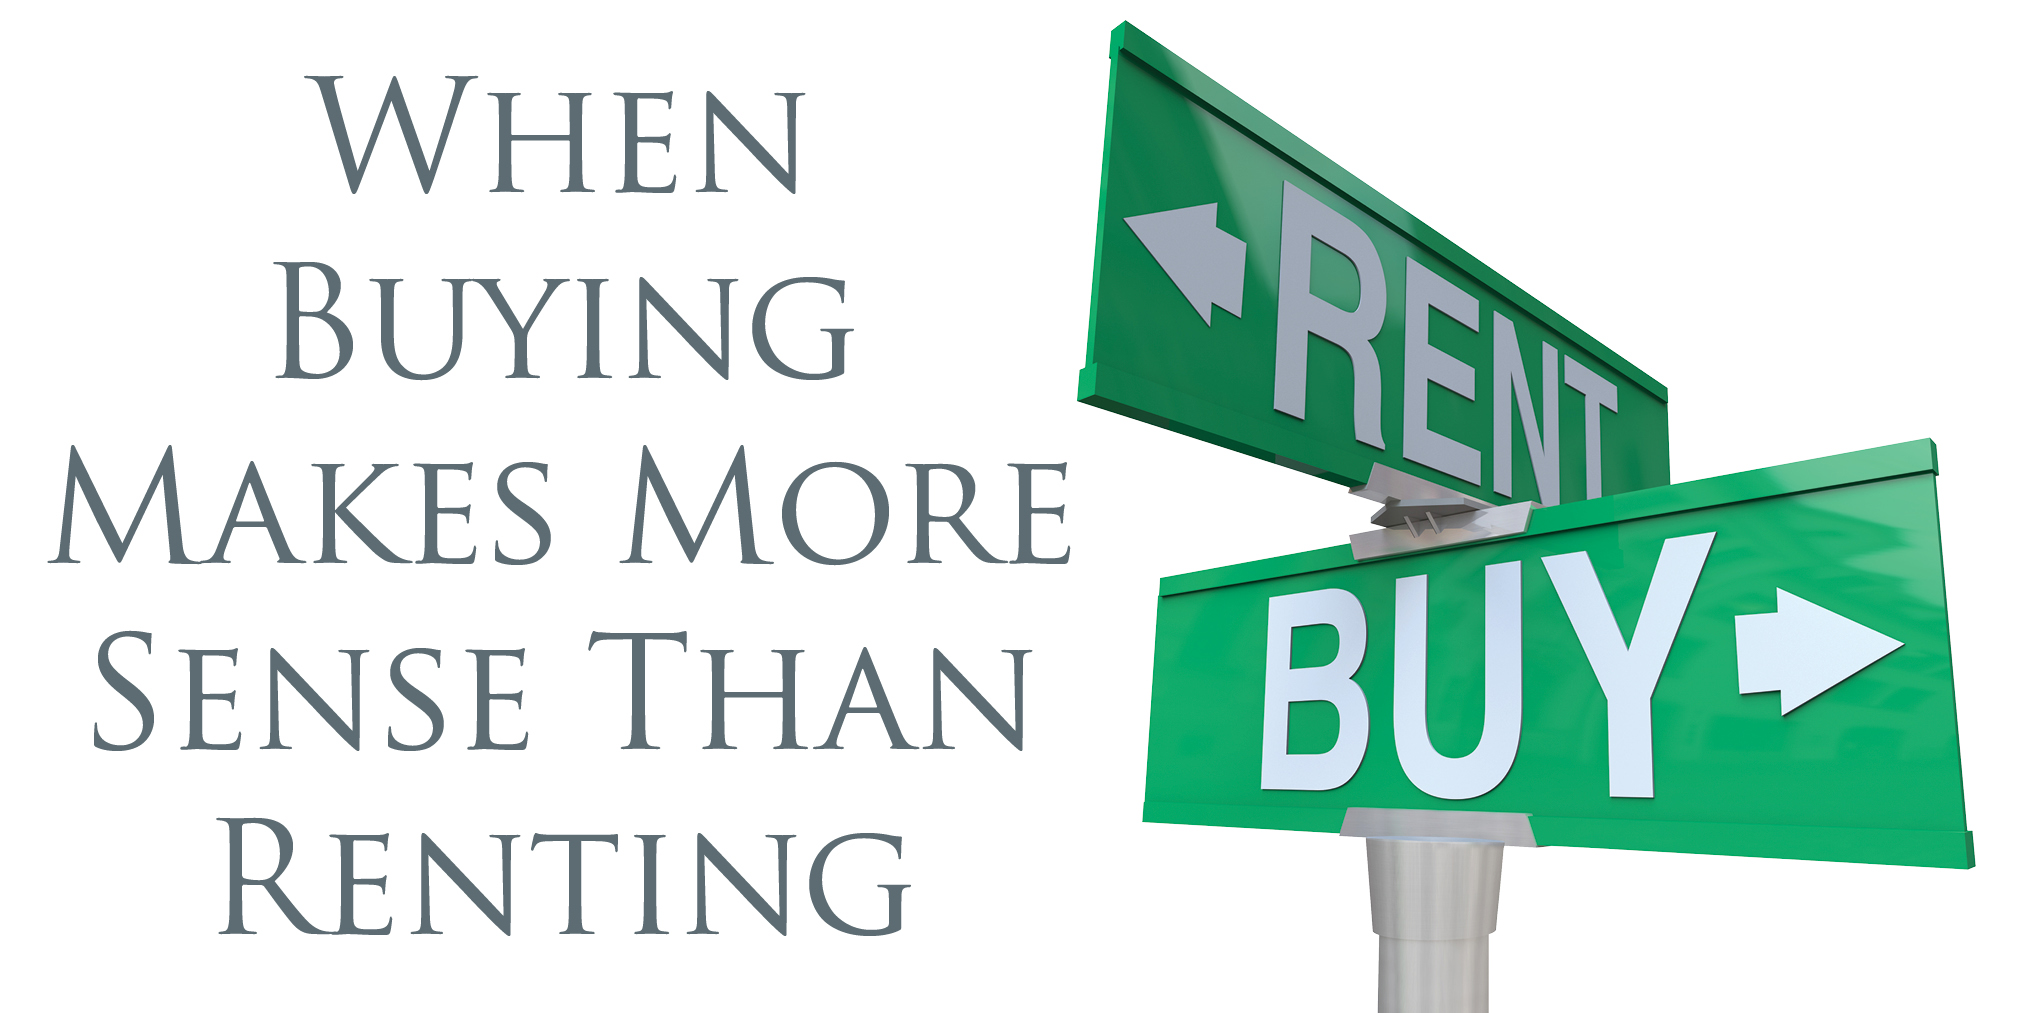 When Buying Makes More Sense Than Renting